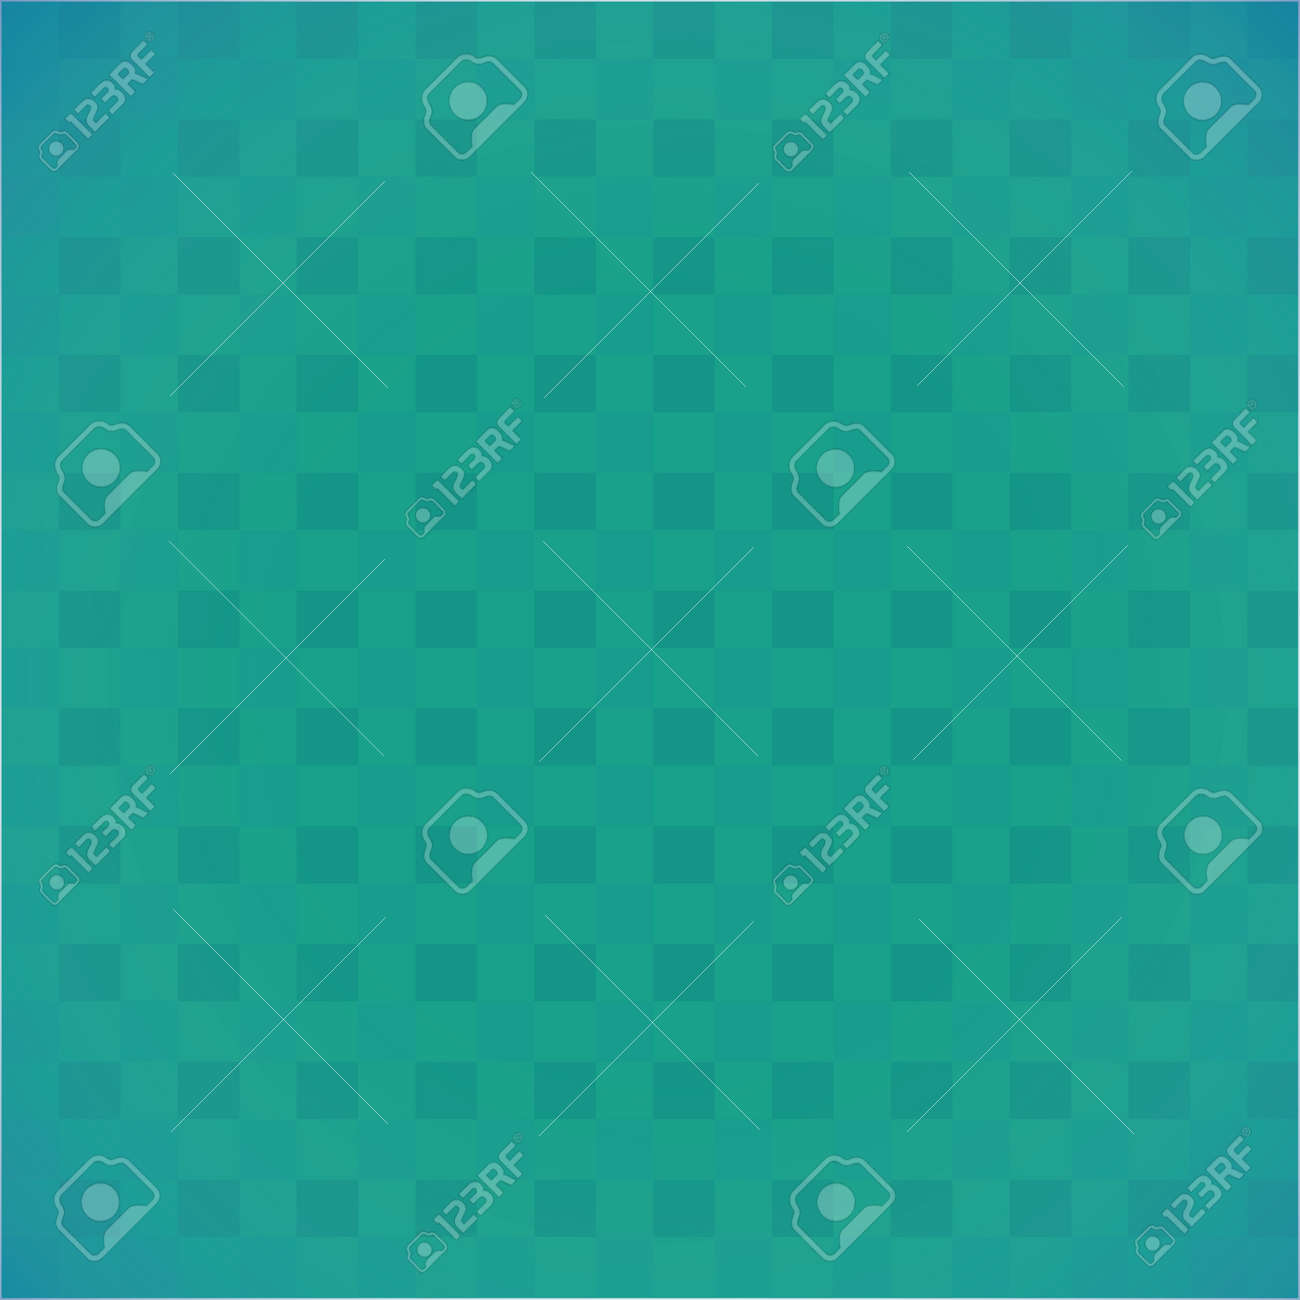 Green table cloth close up suitable for background use Stock Vector - 16935038